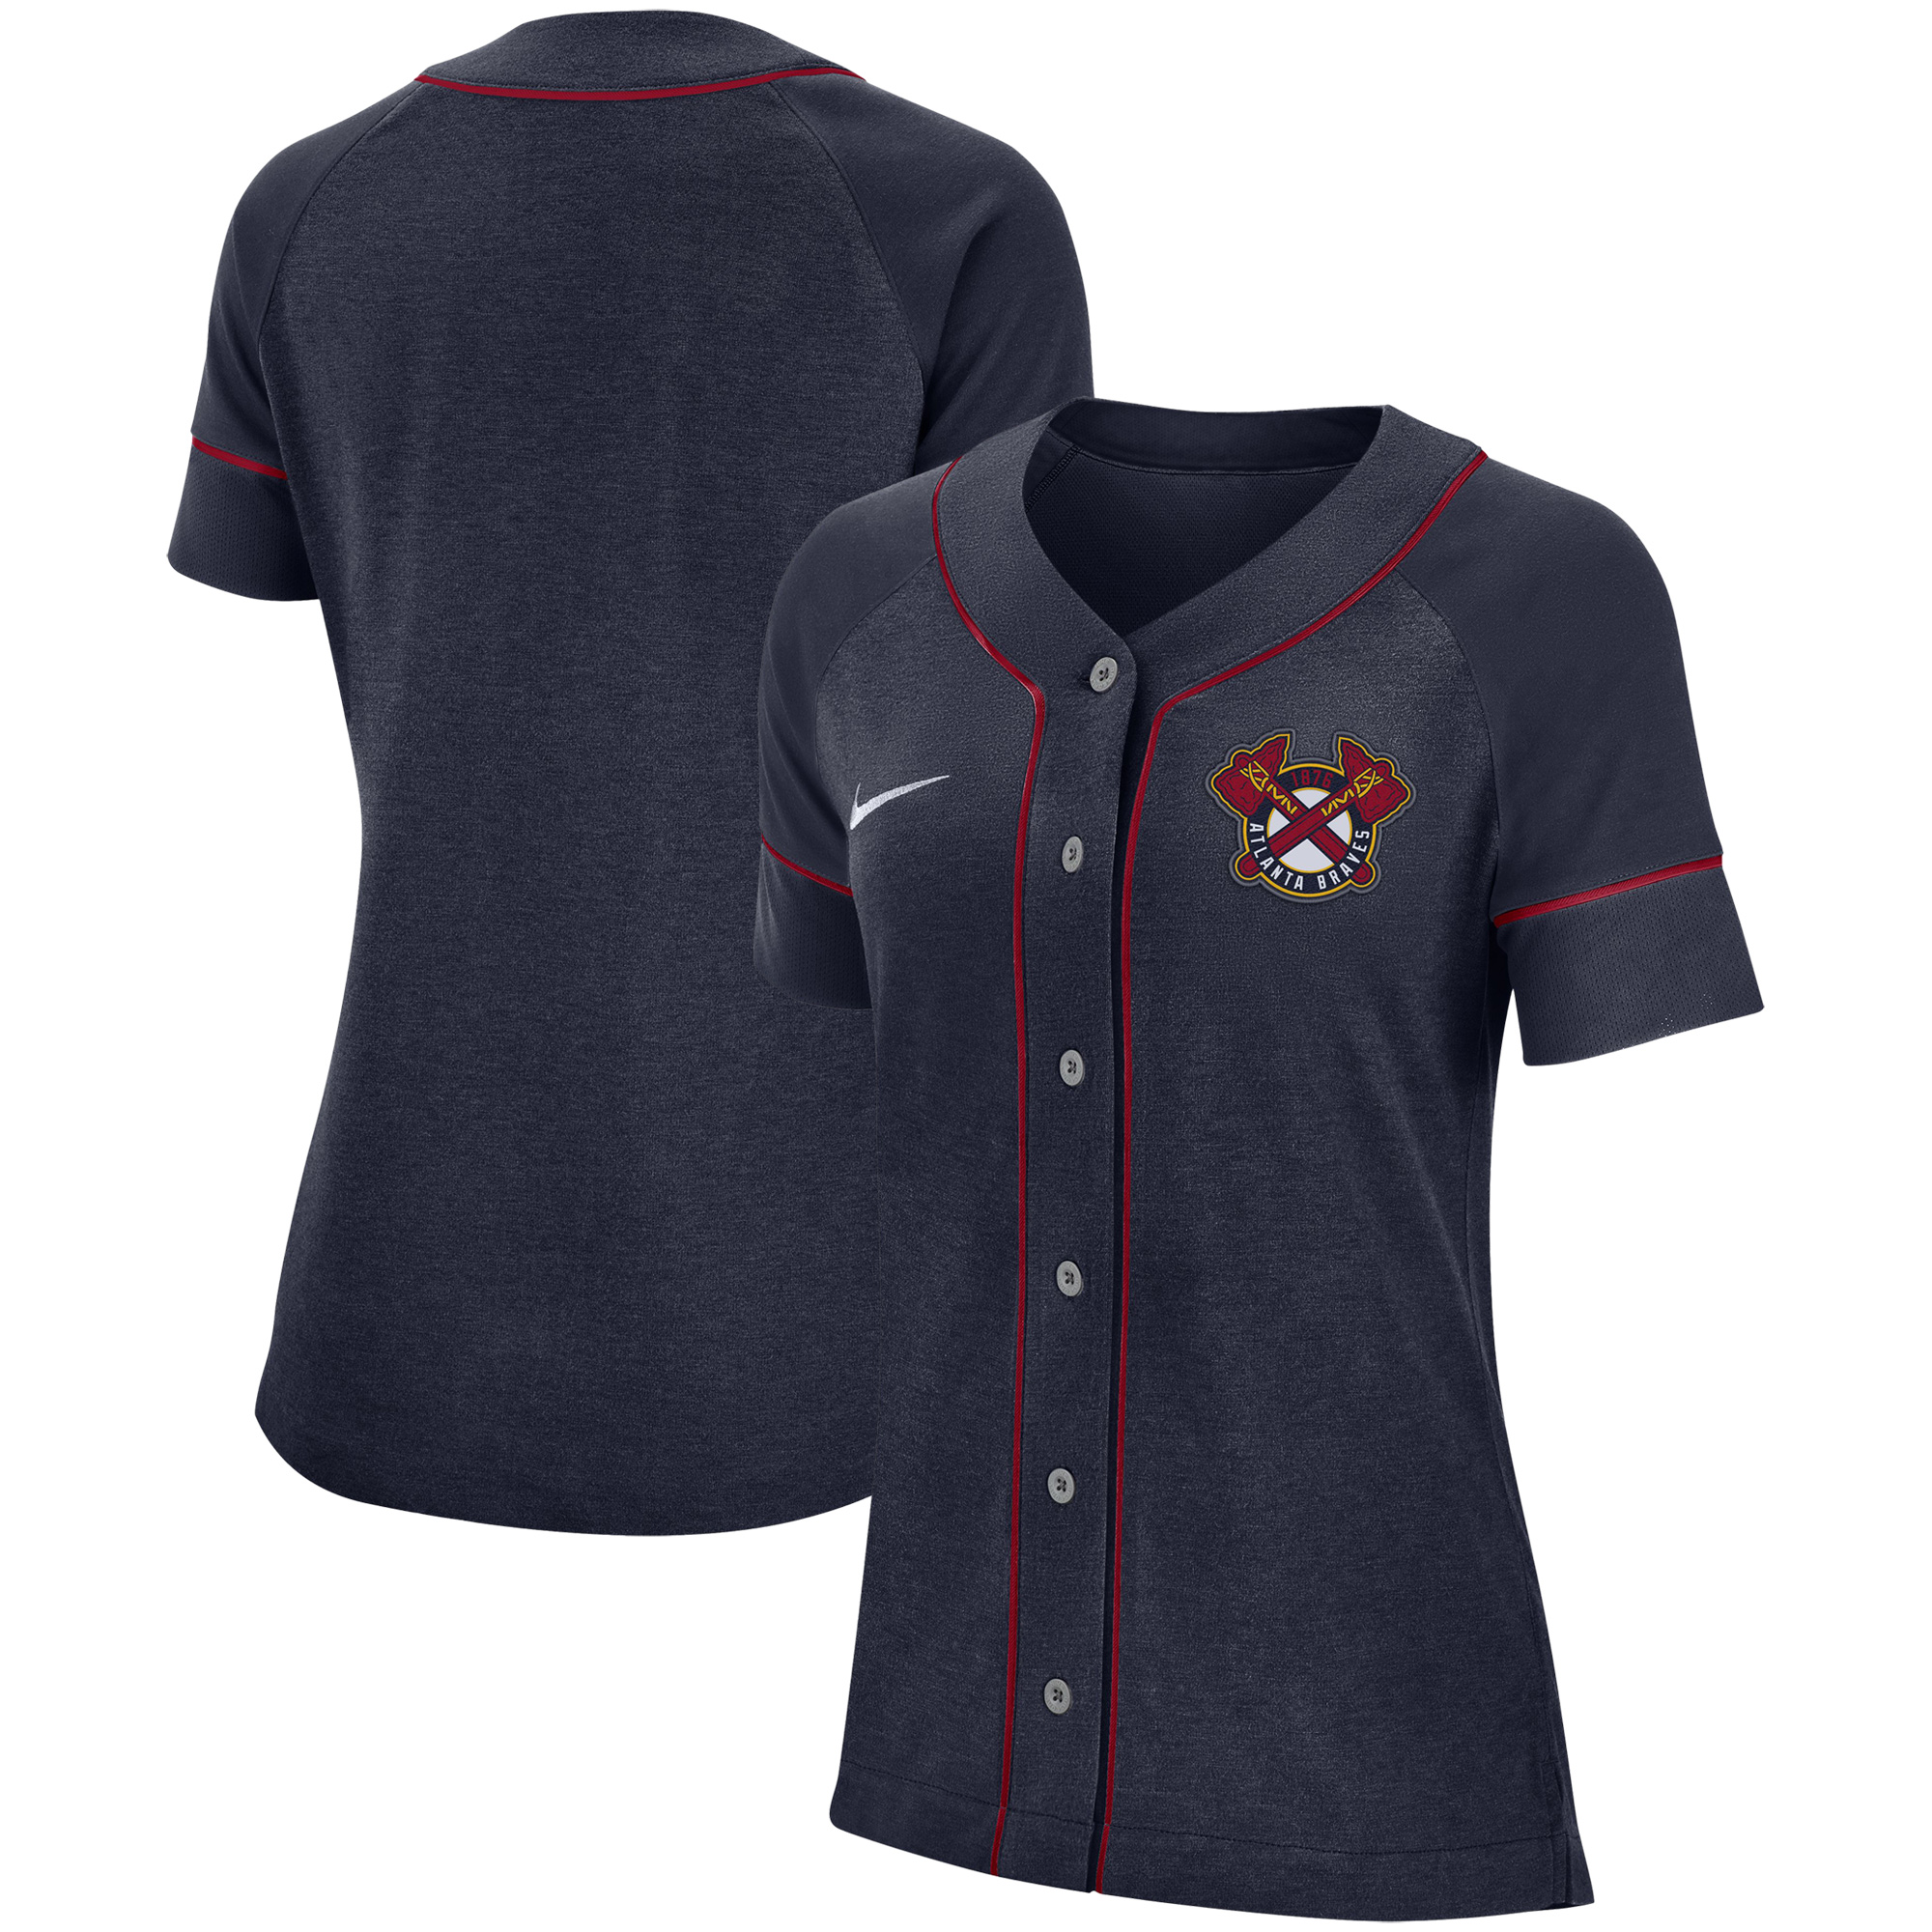 hot sale online 70251 dedf8 Atlanta Braves Nike Women's Classic Baseball Jersey - Navy